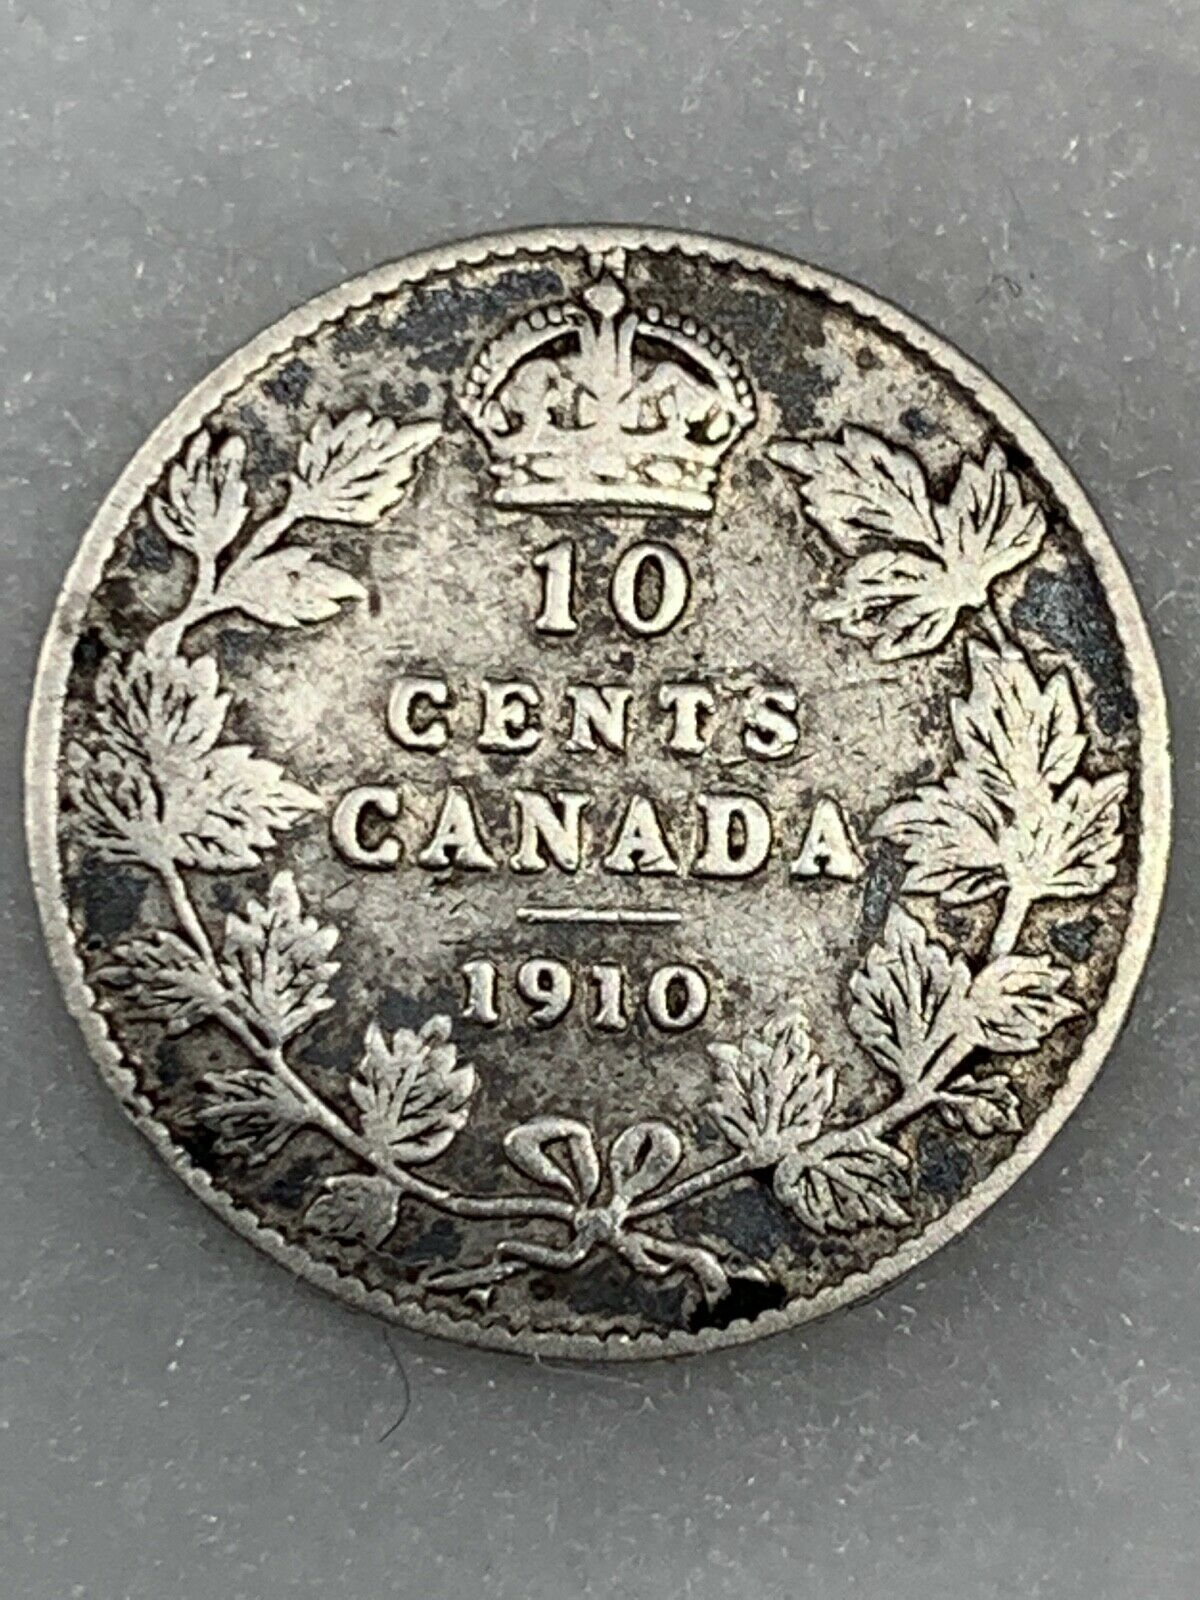 1910 Canadian Dime Or Ten 10 Cents, Circulated, Ungraded And Uncertified - $6.00